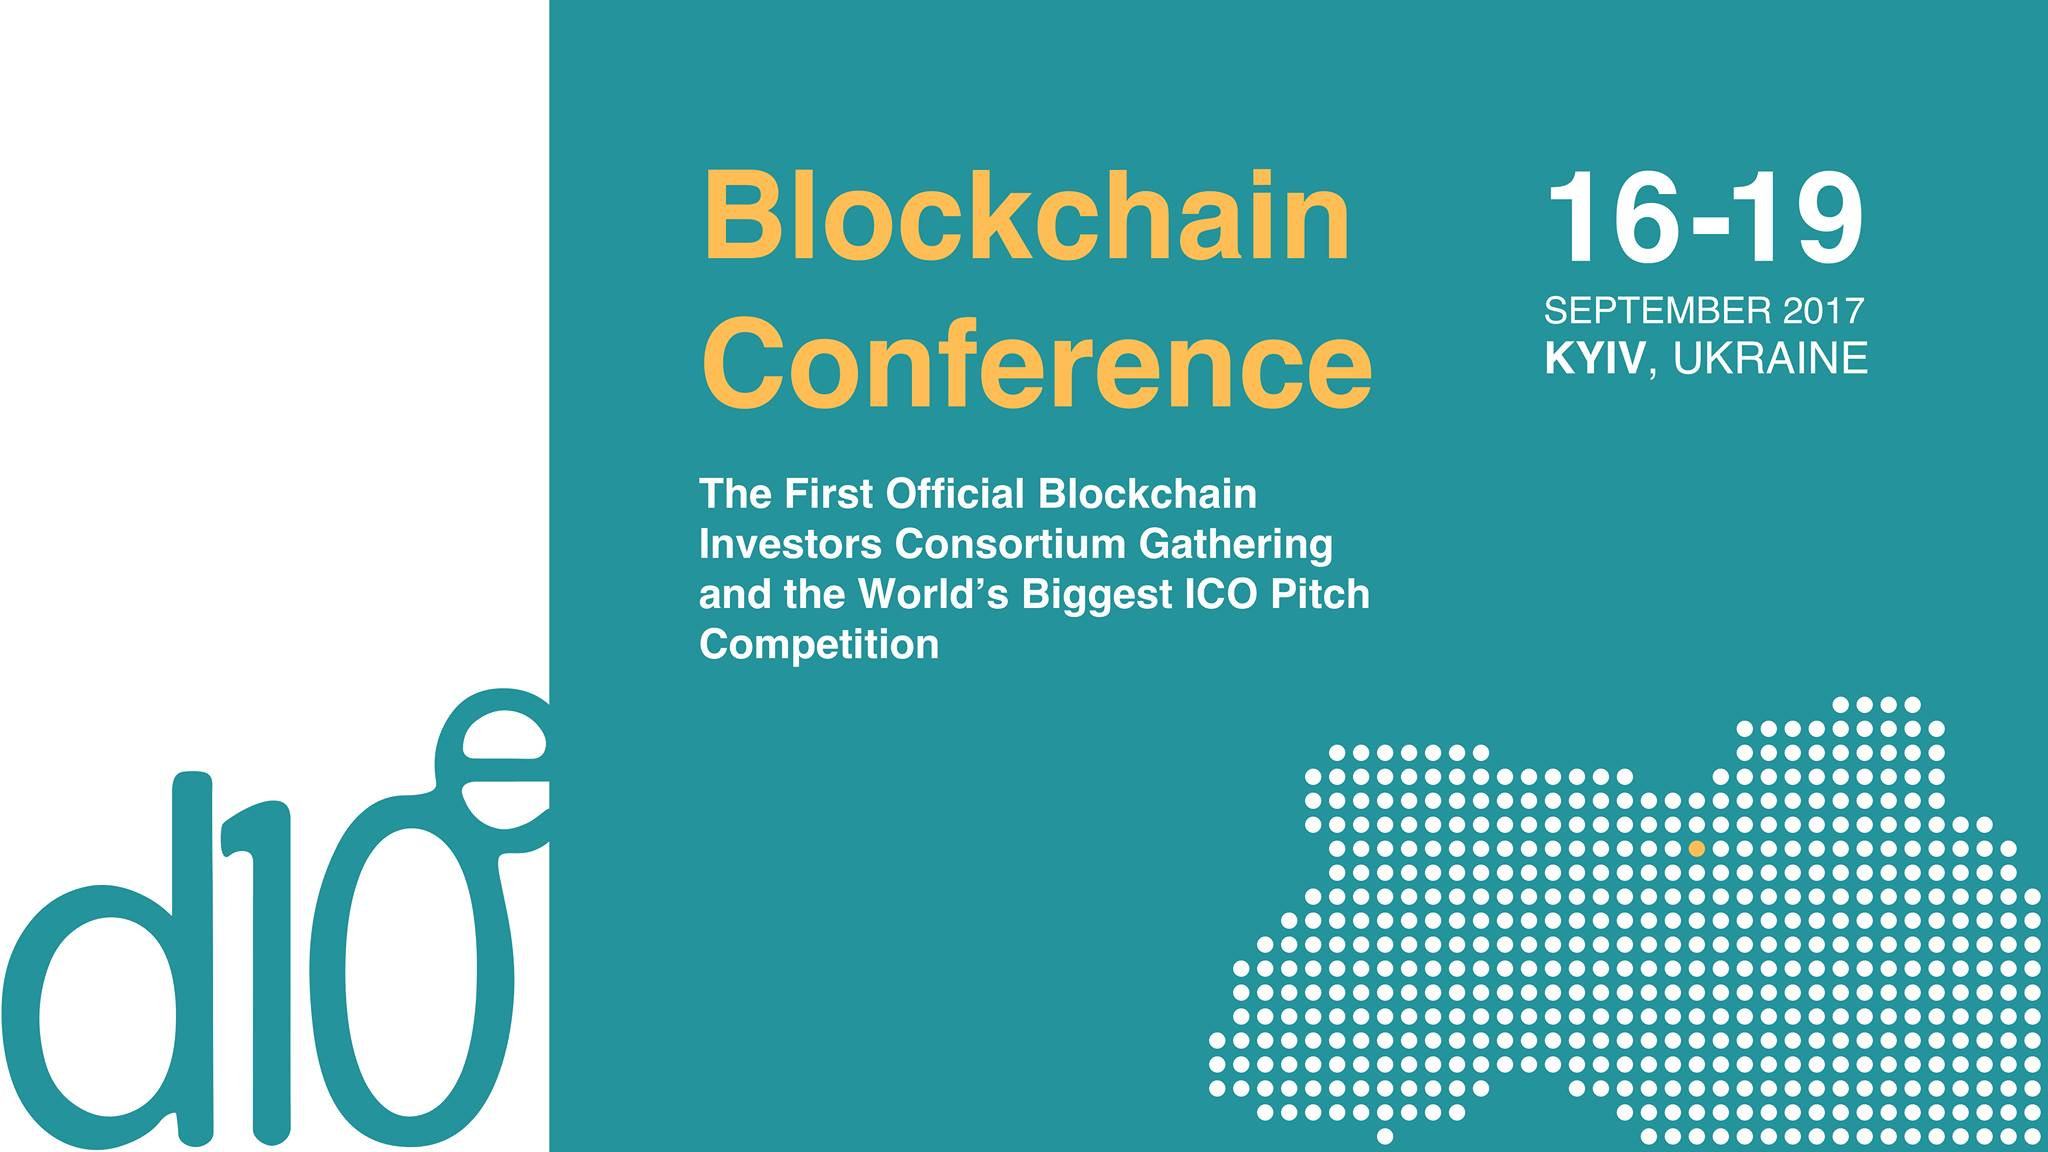 D10e Blockchain Investors Consortium & ICO Pitch Competition